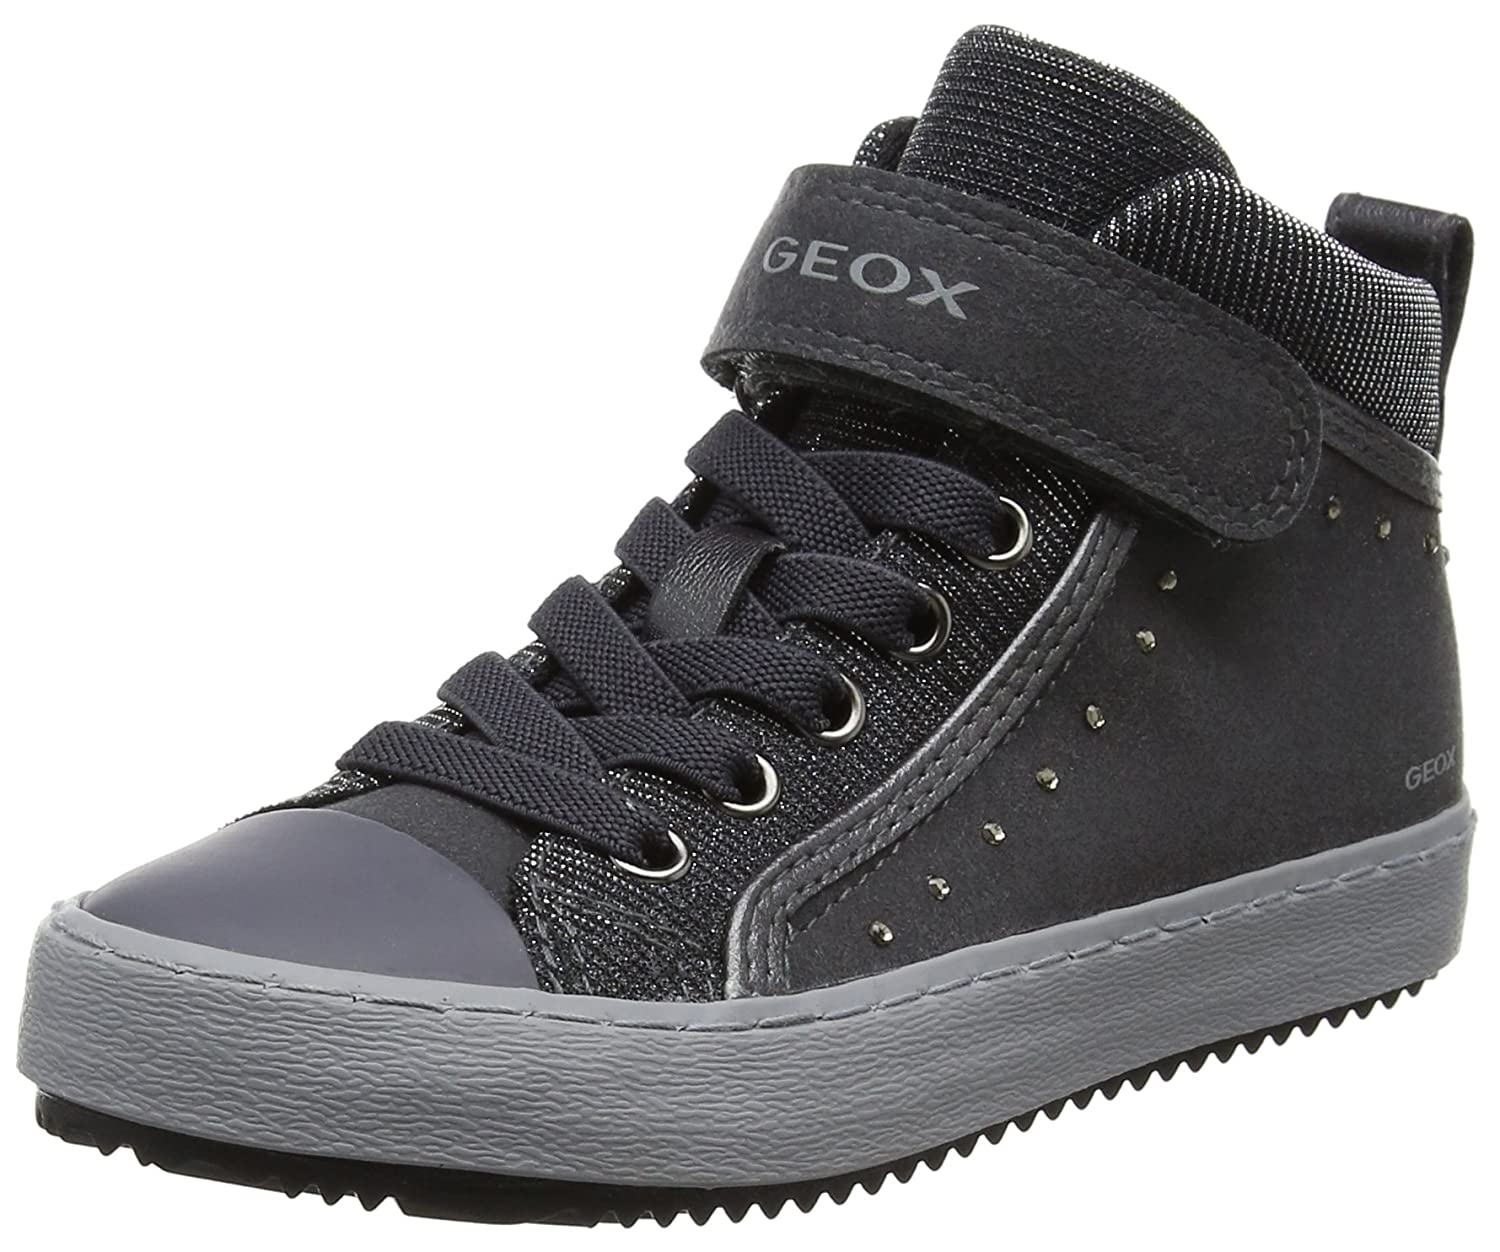 Geox J Kalispera Girl I, Baskets Hautes Fille